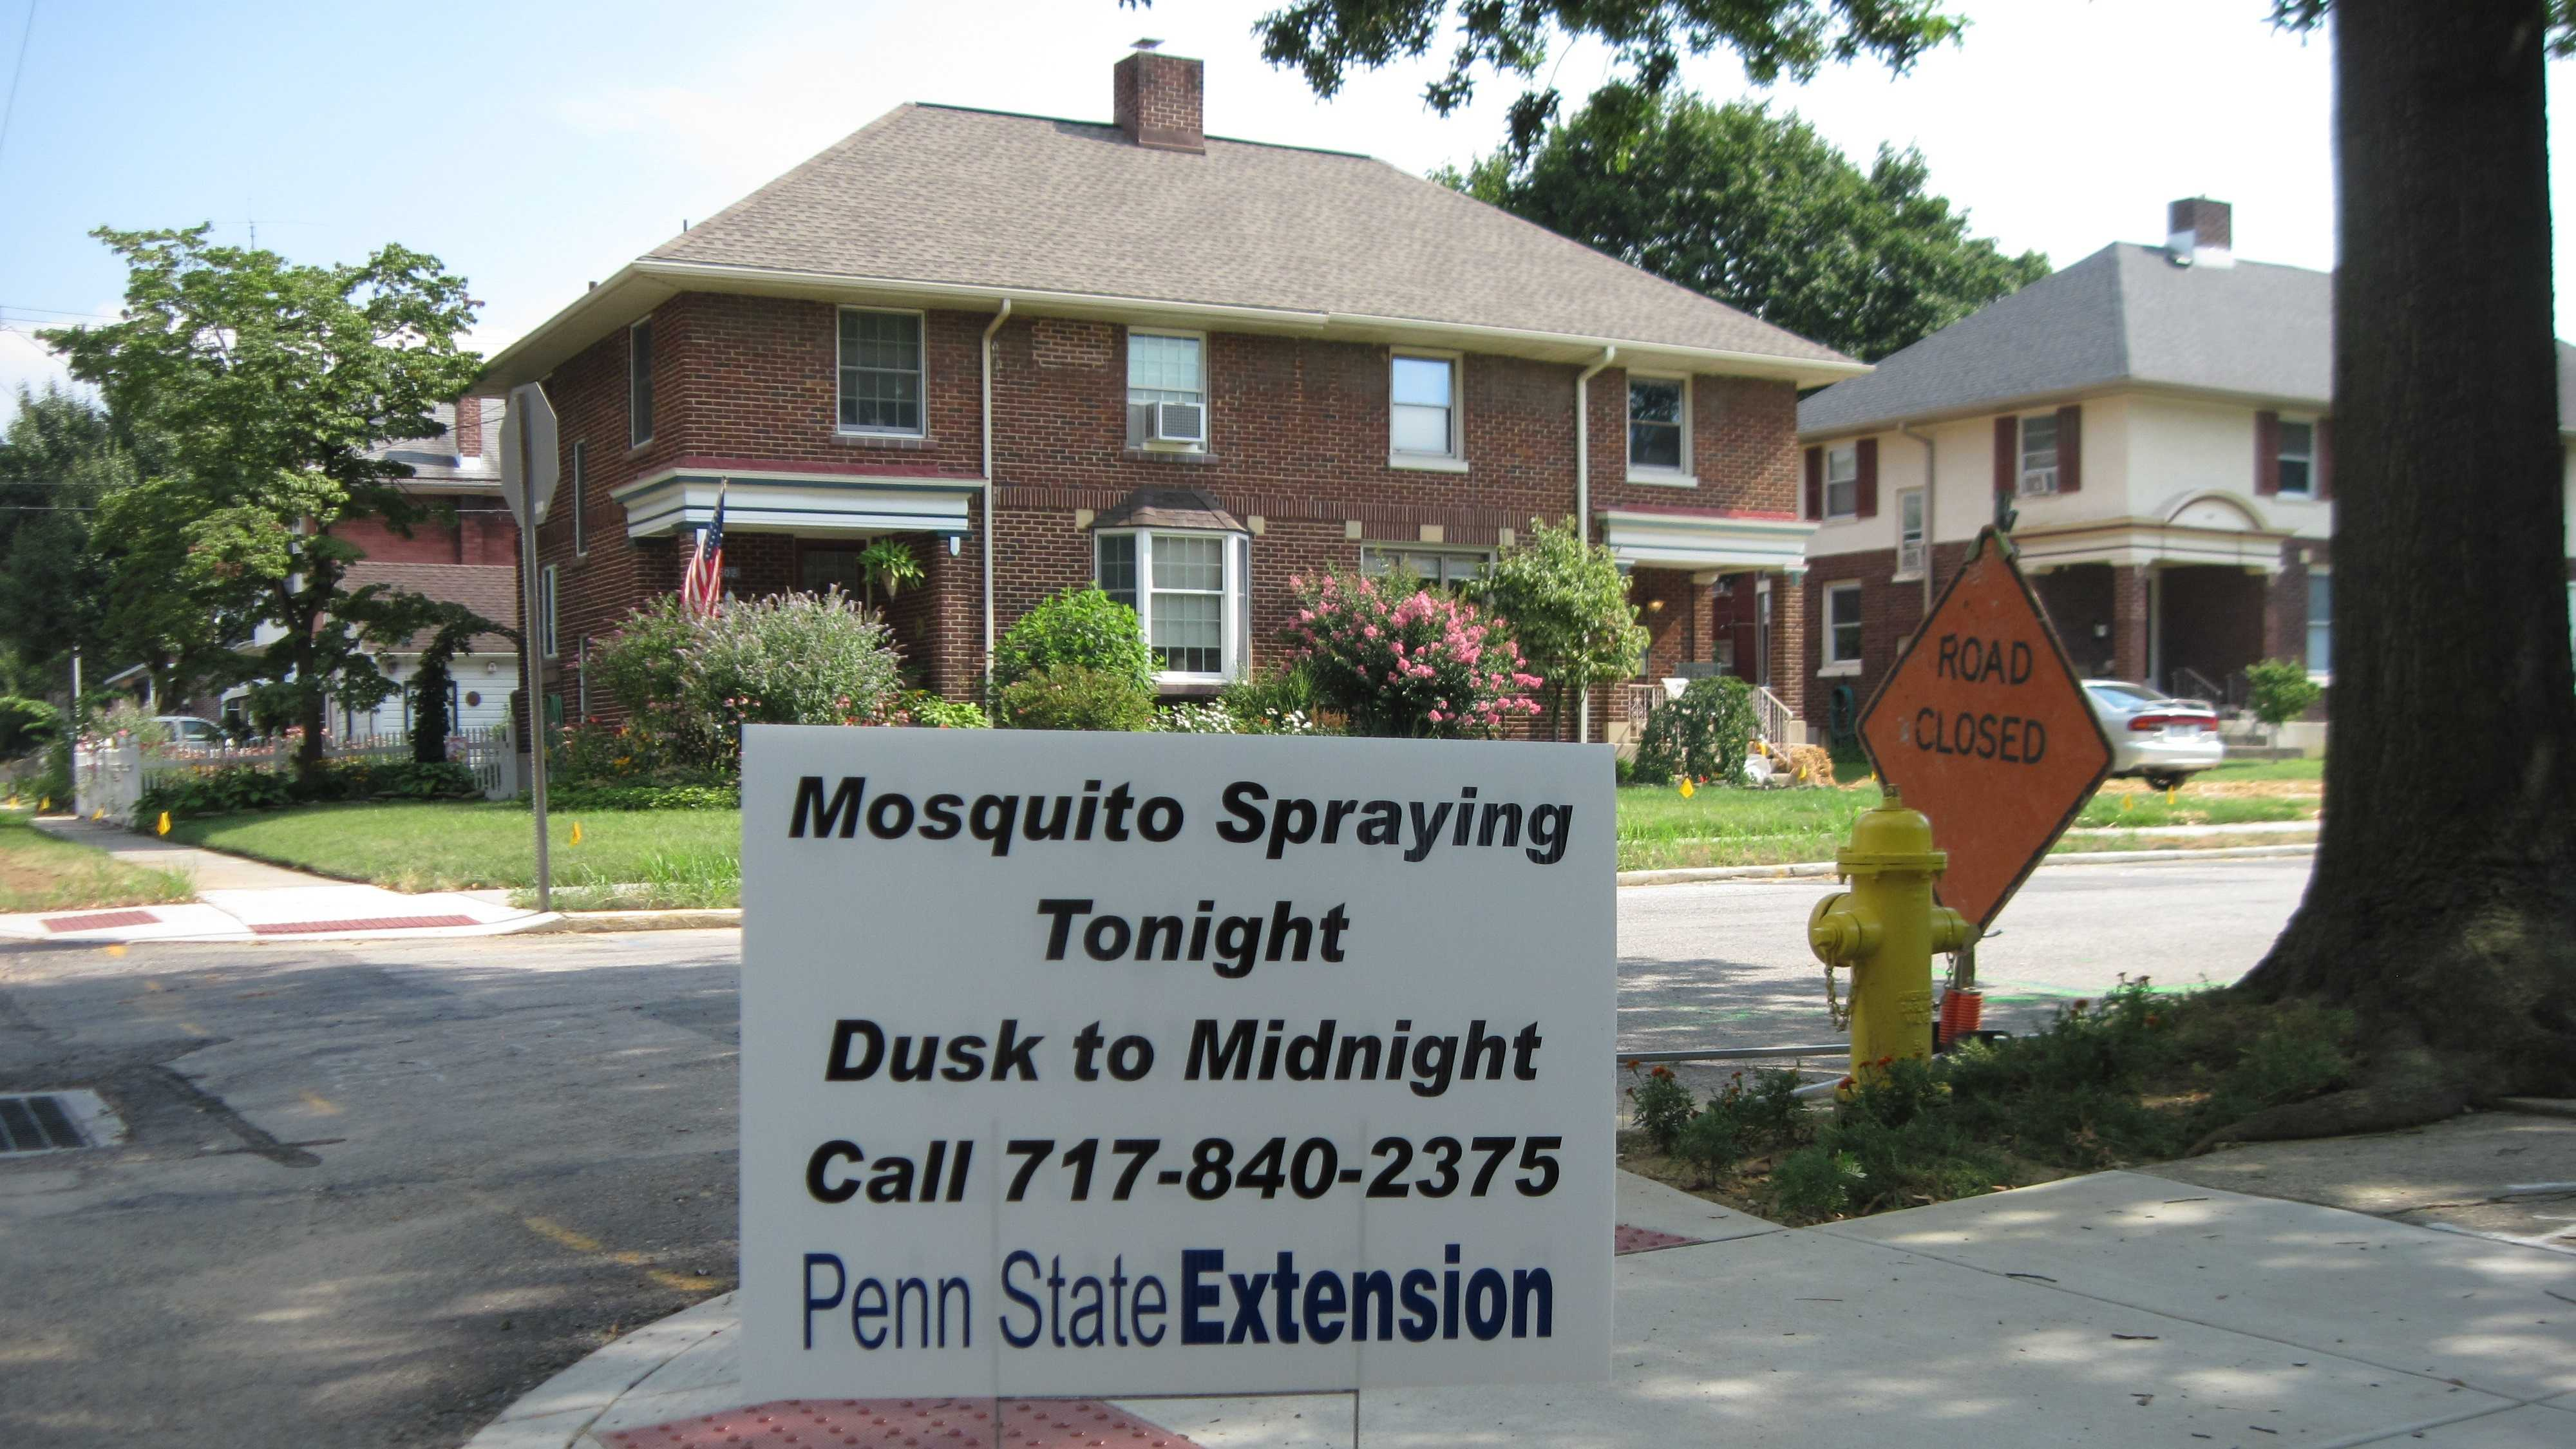 7.26.14Mosquito Spray Sign